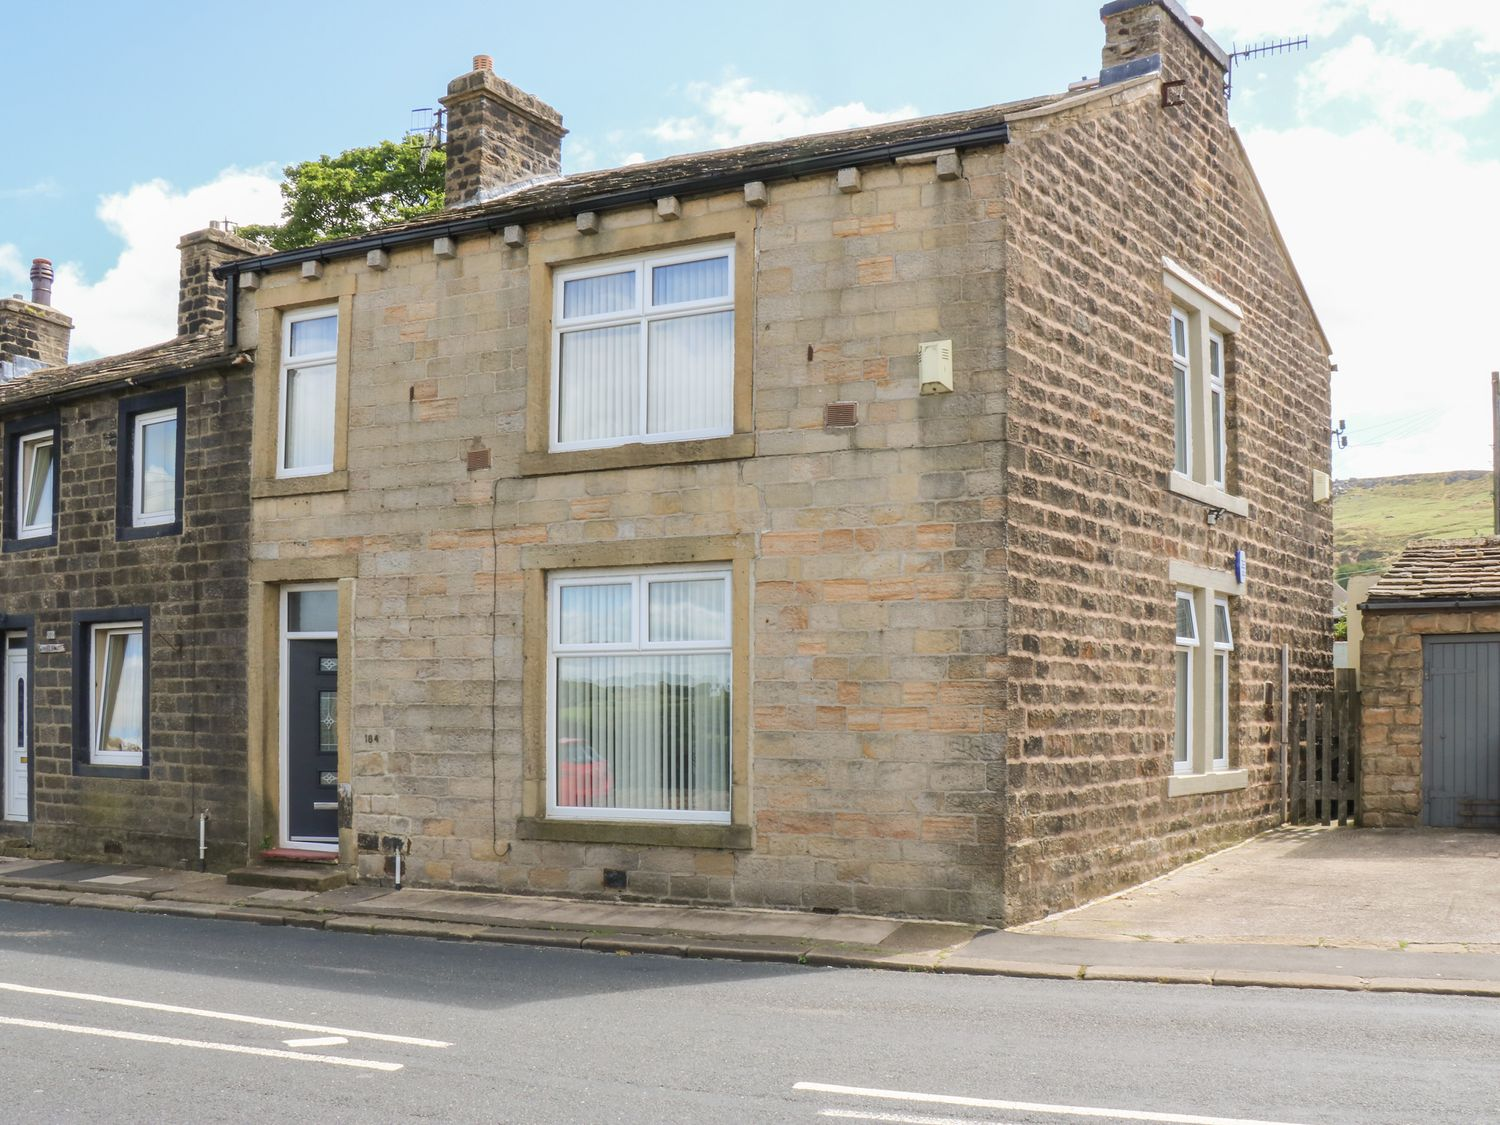 184 Keighley Road - Yorkshire Dales - 1051704 - photo 1